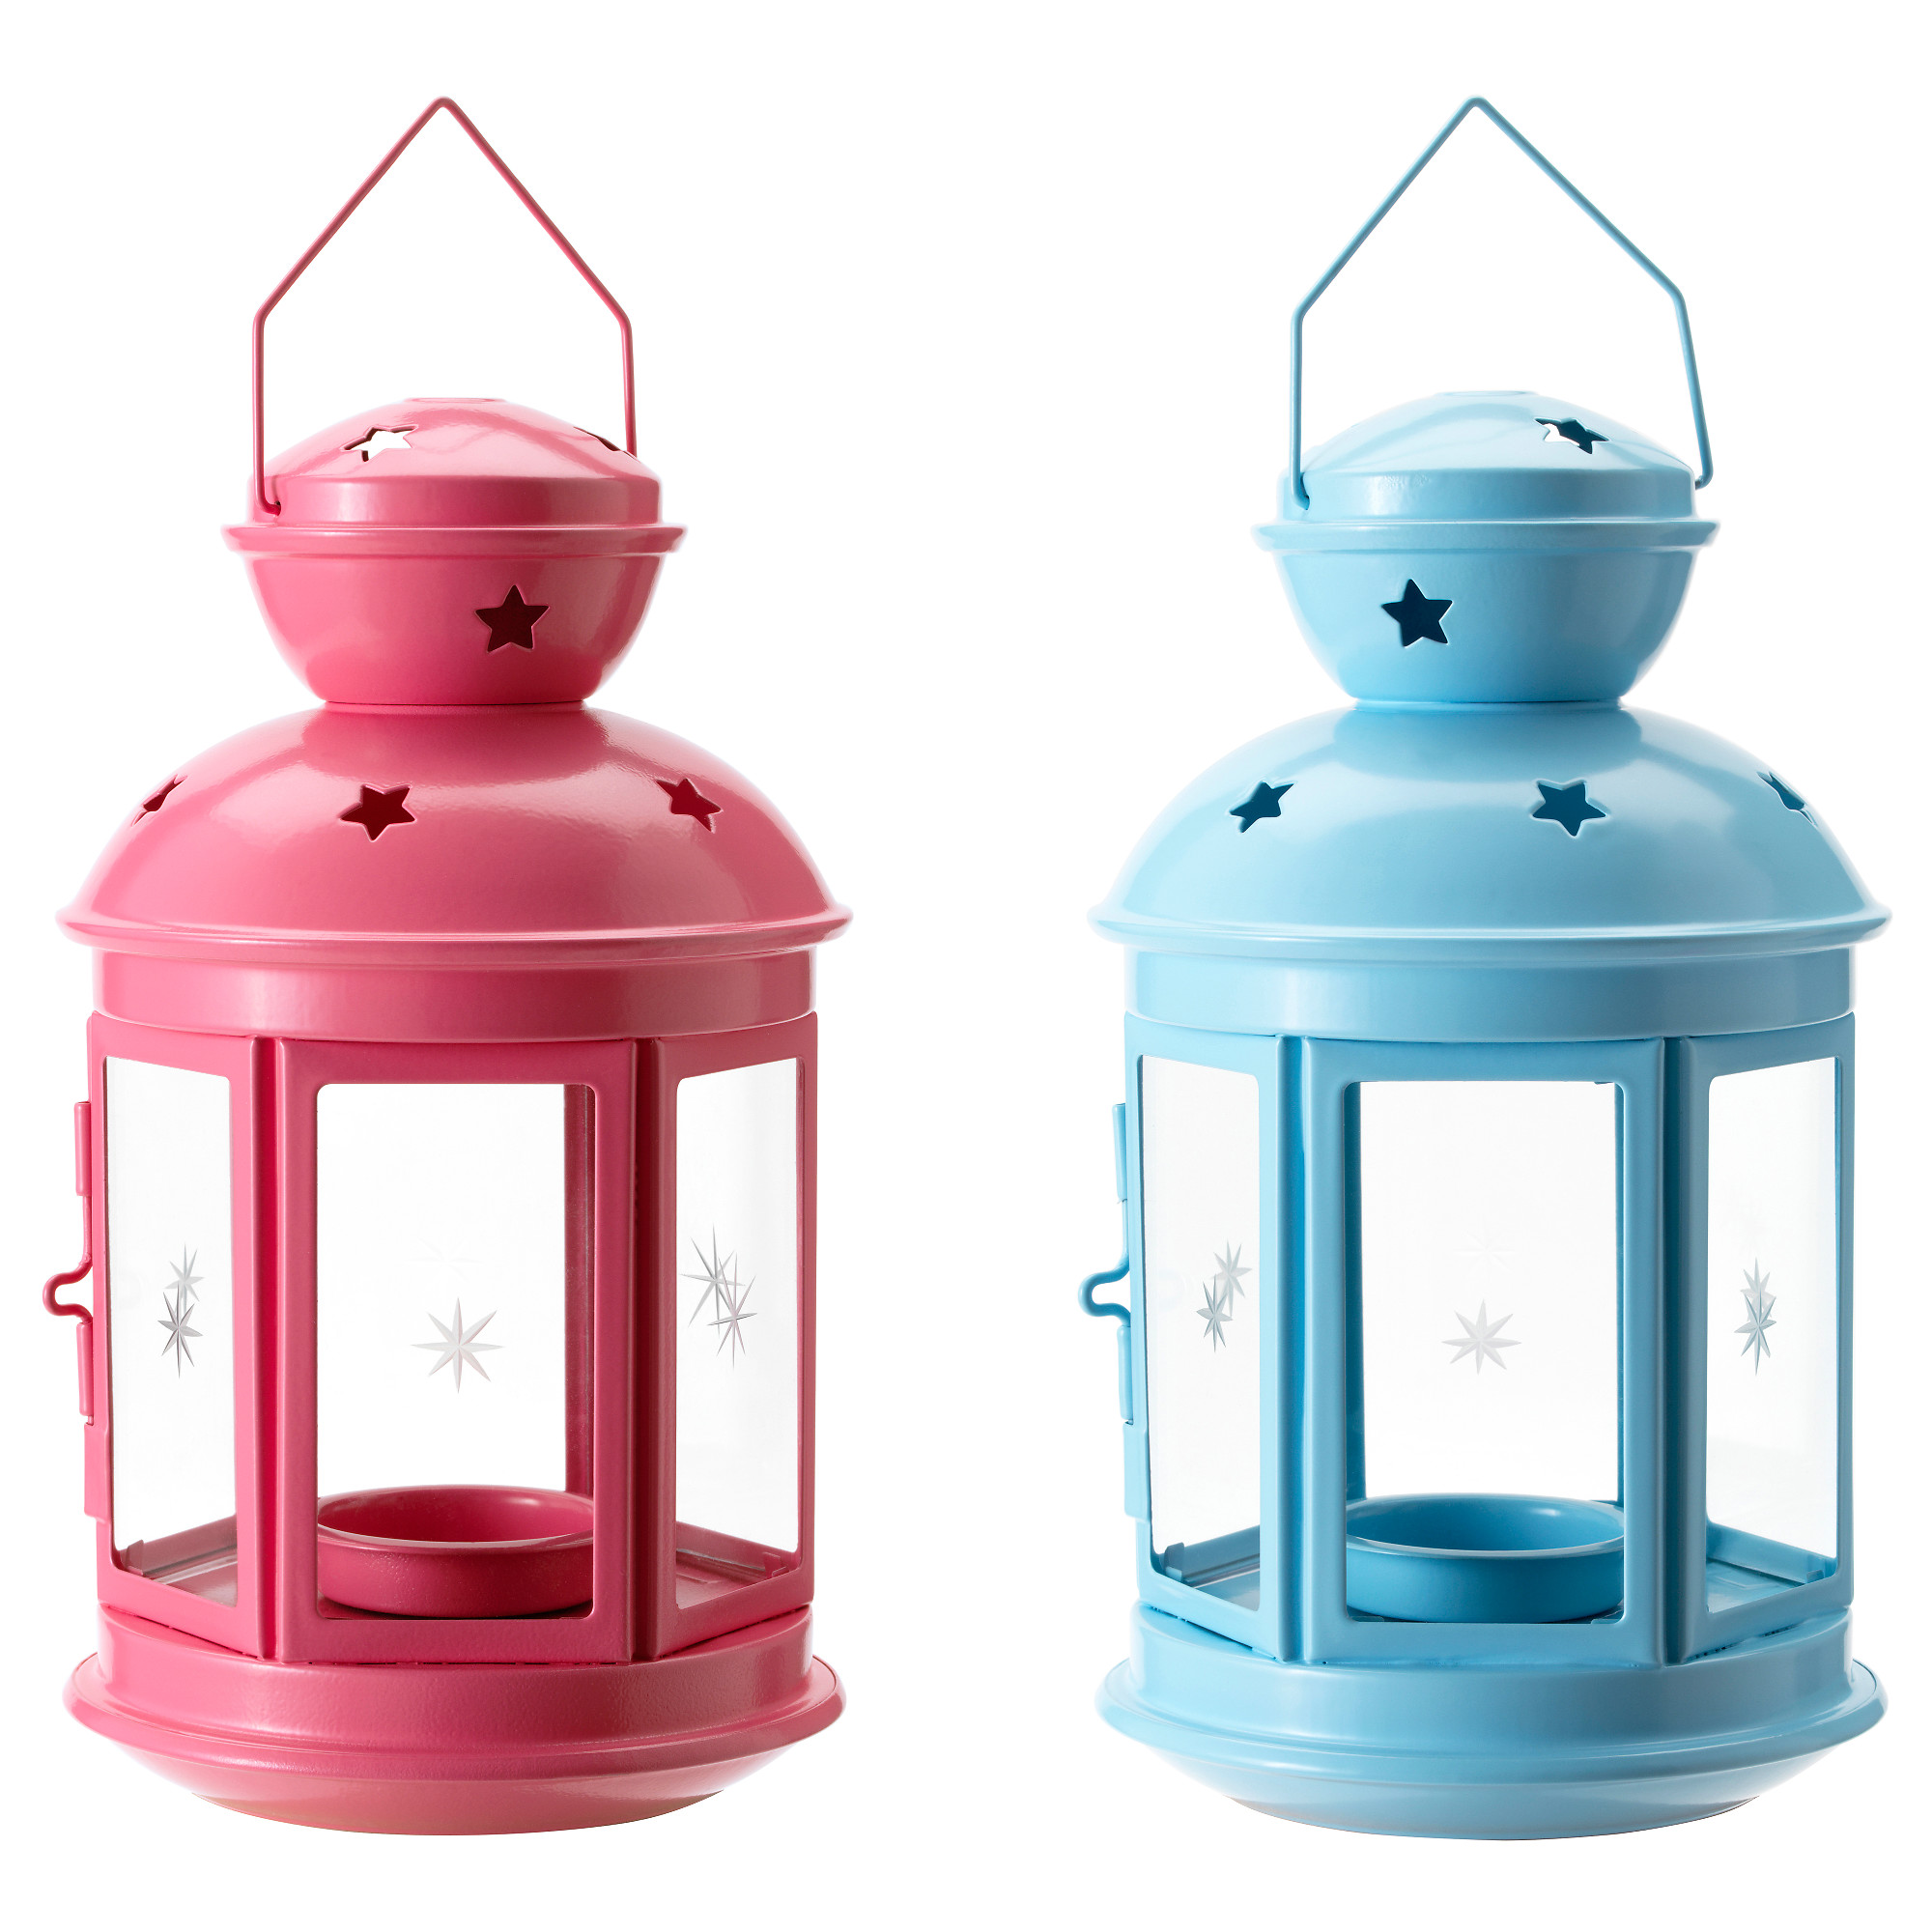 Interesting candle lanterns for outdoor lighting ideas with outdoor candle lanterns and hanging candle lanterns